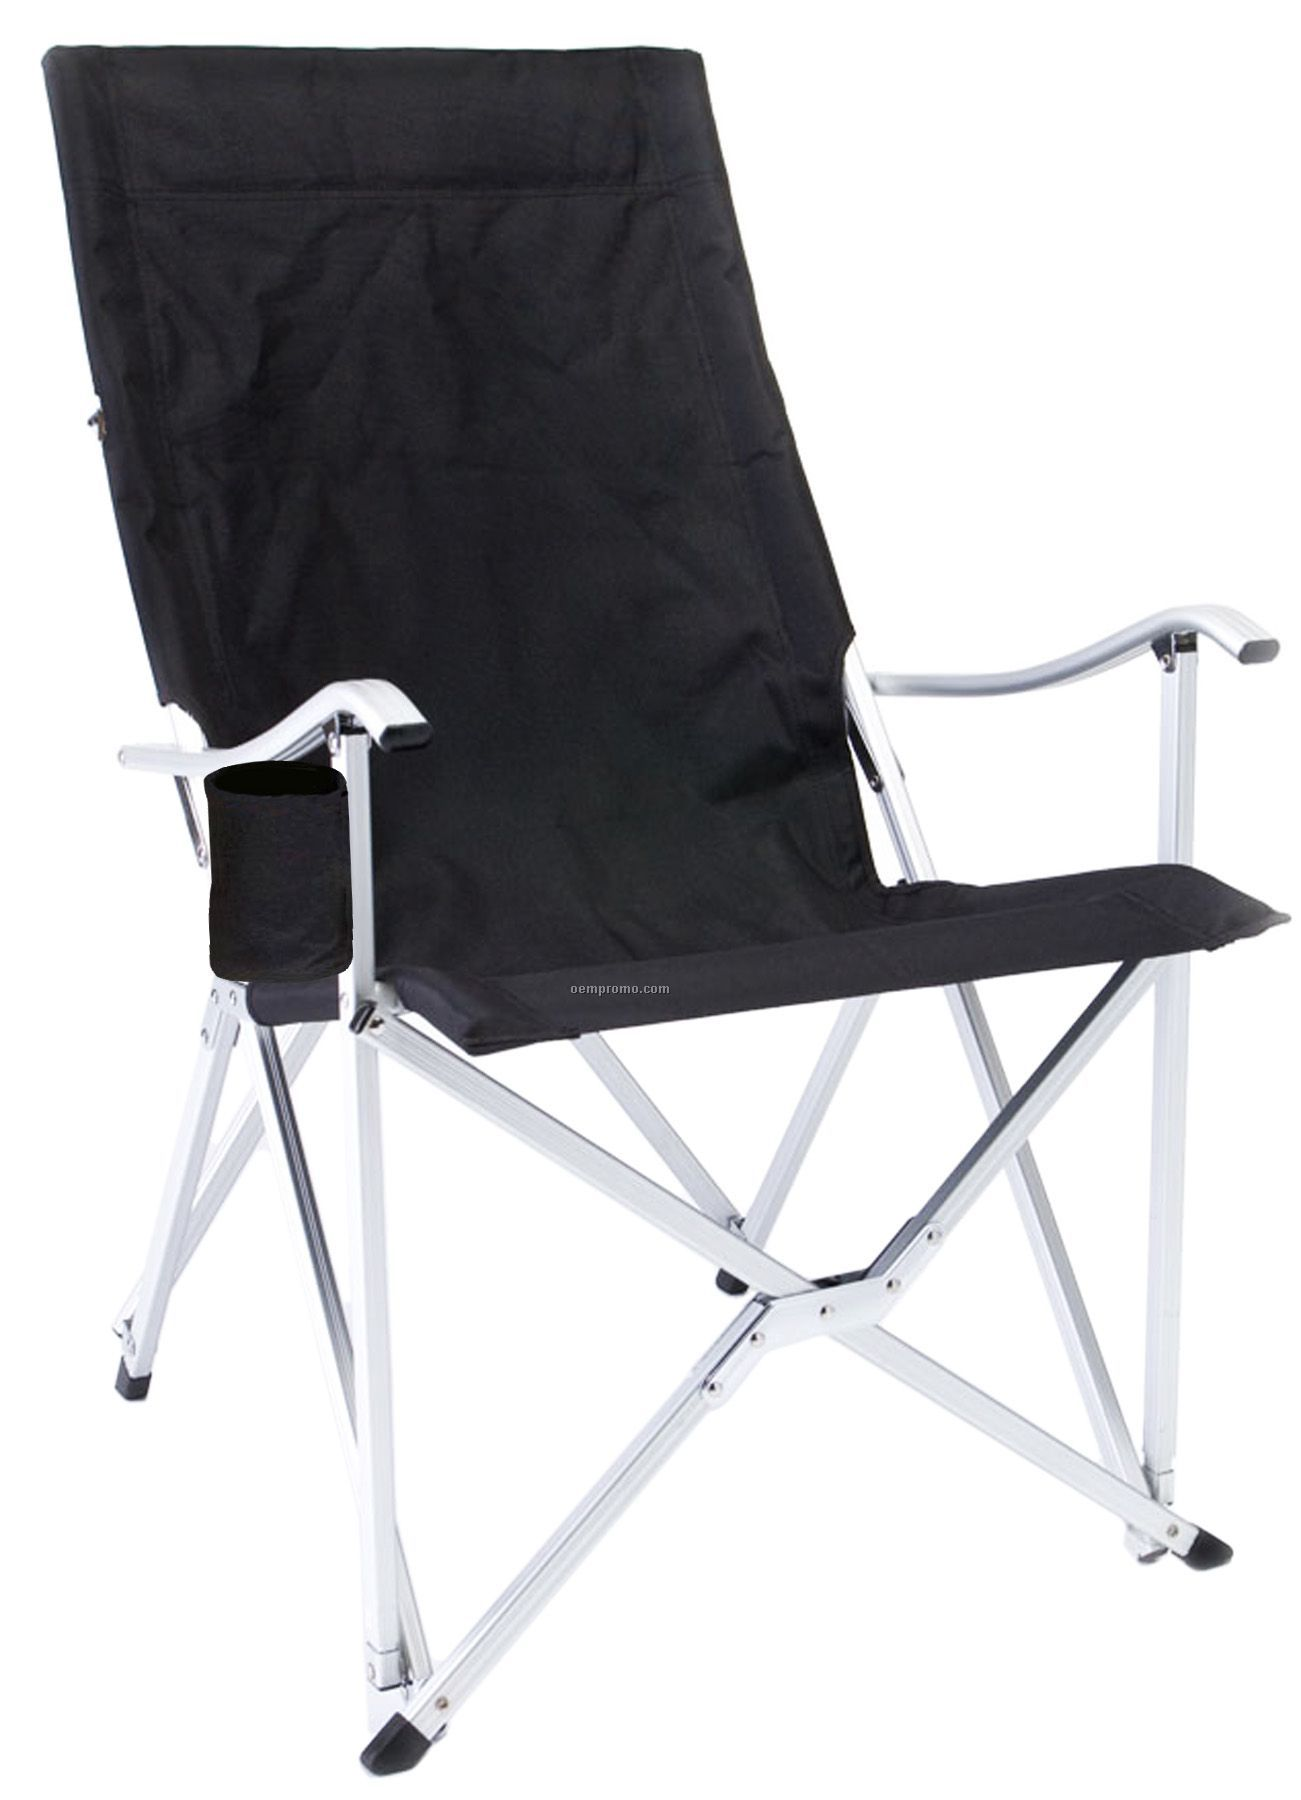 Folding Beach Chair With Carrying Bag China Wholesale Folding Beach Chair Wit